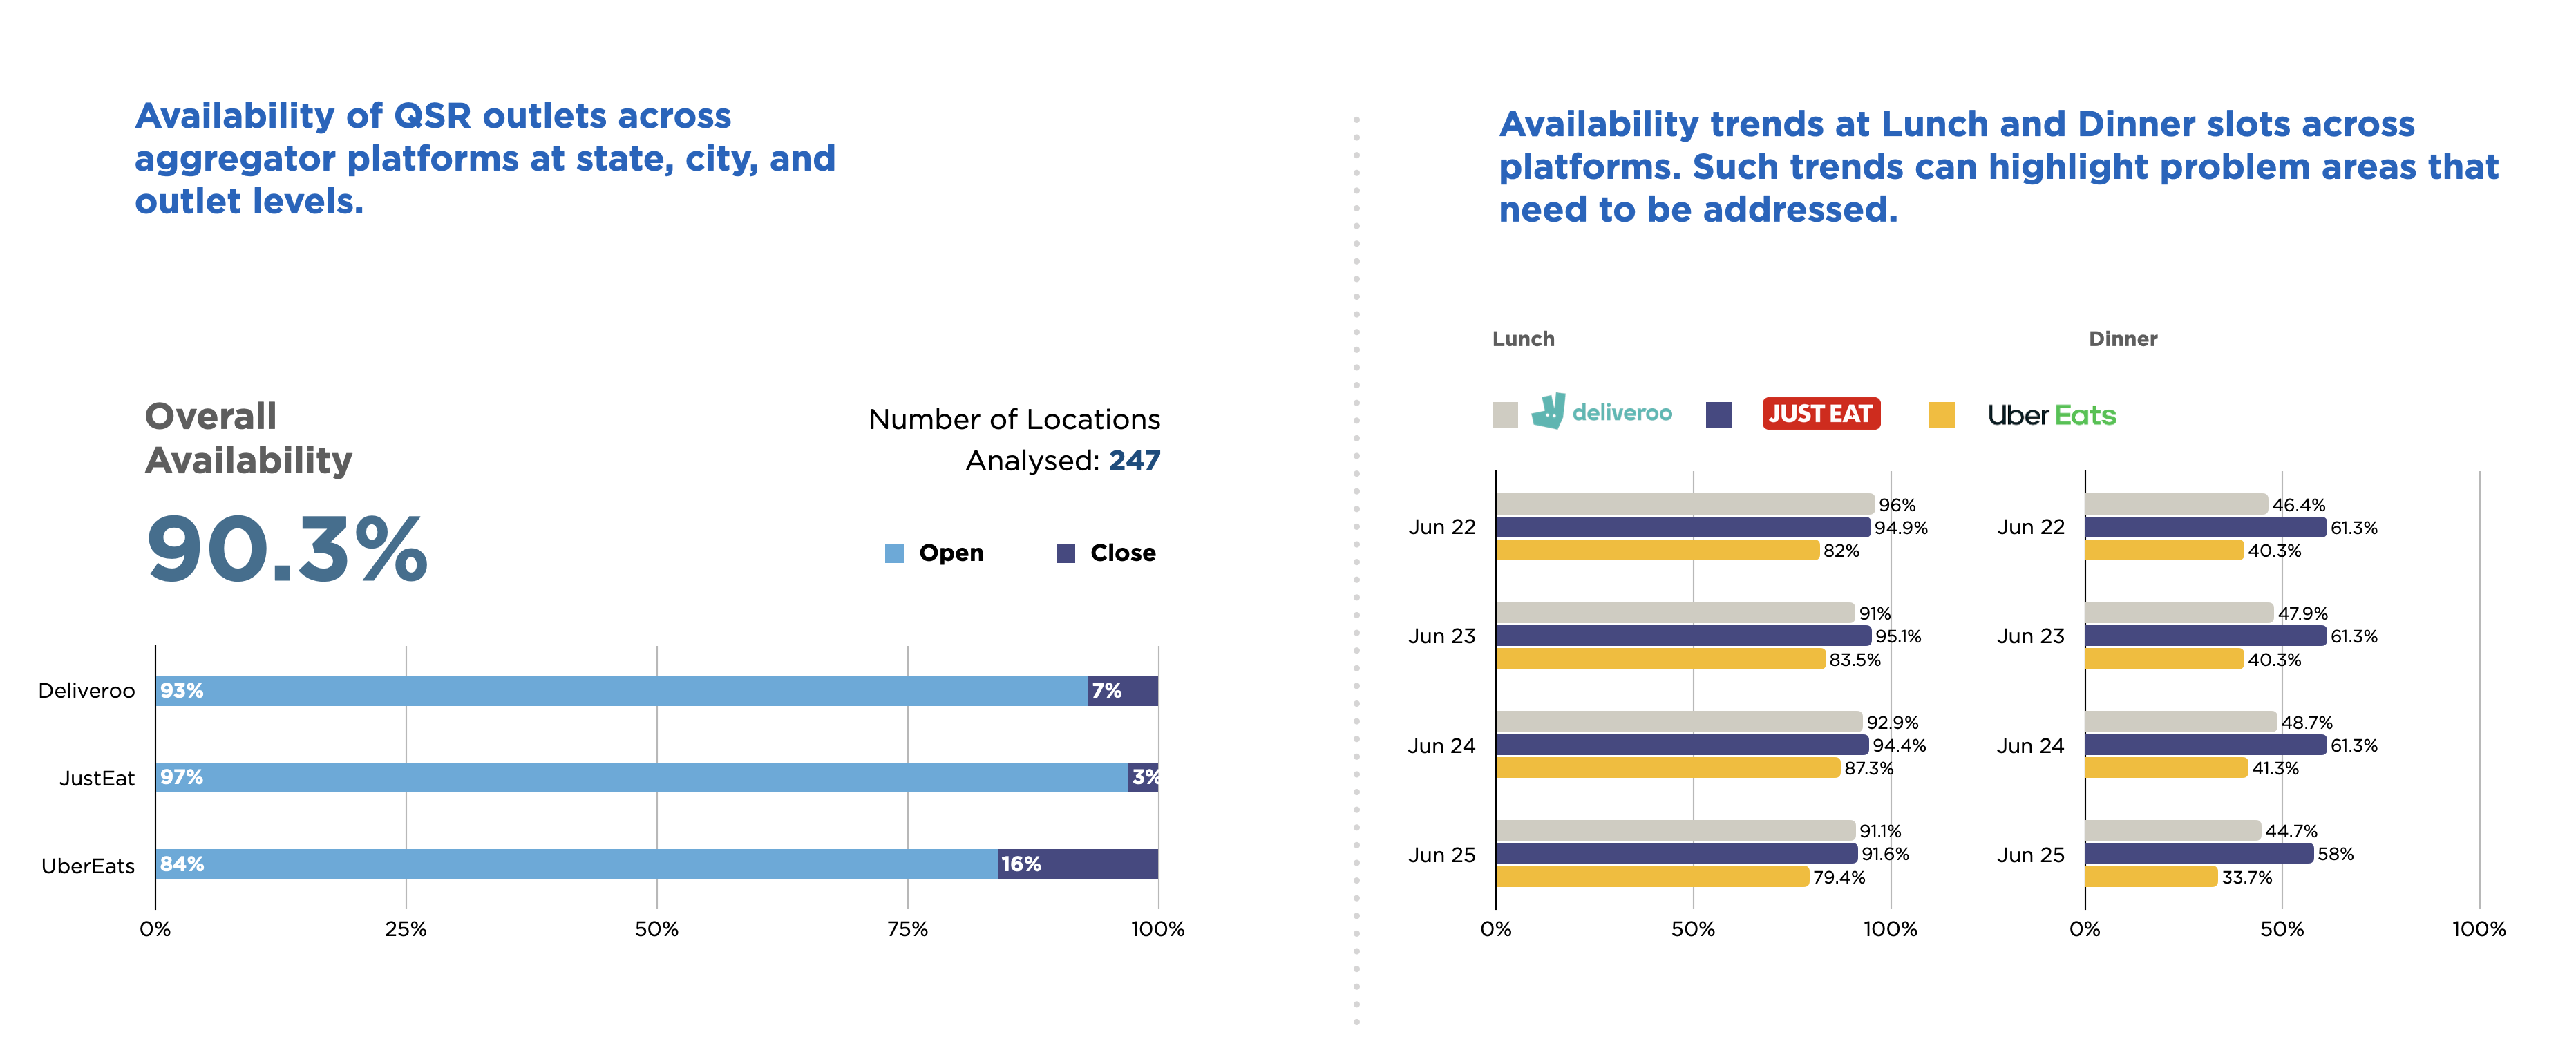 Availability of QSR and Availability Trends